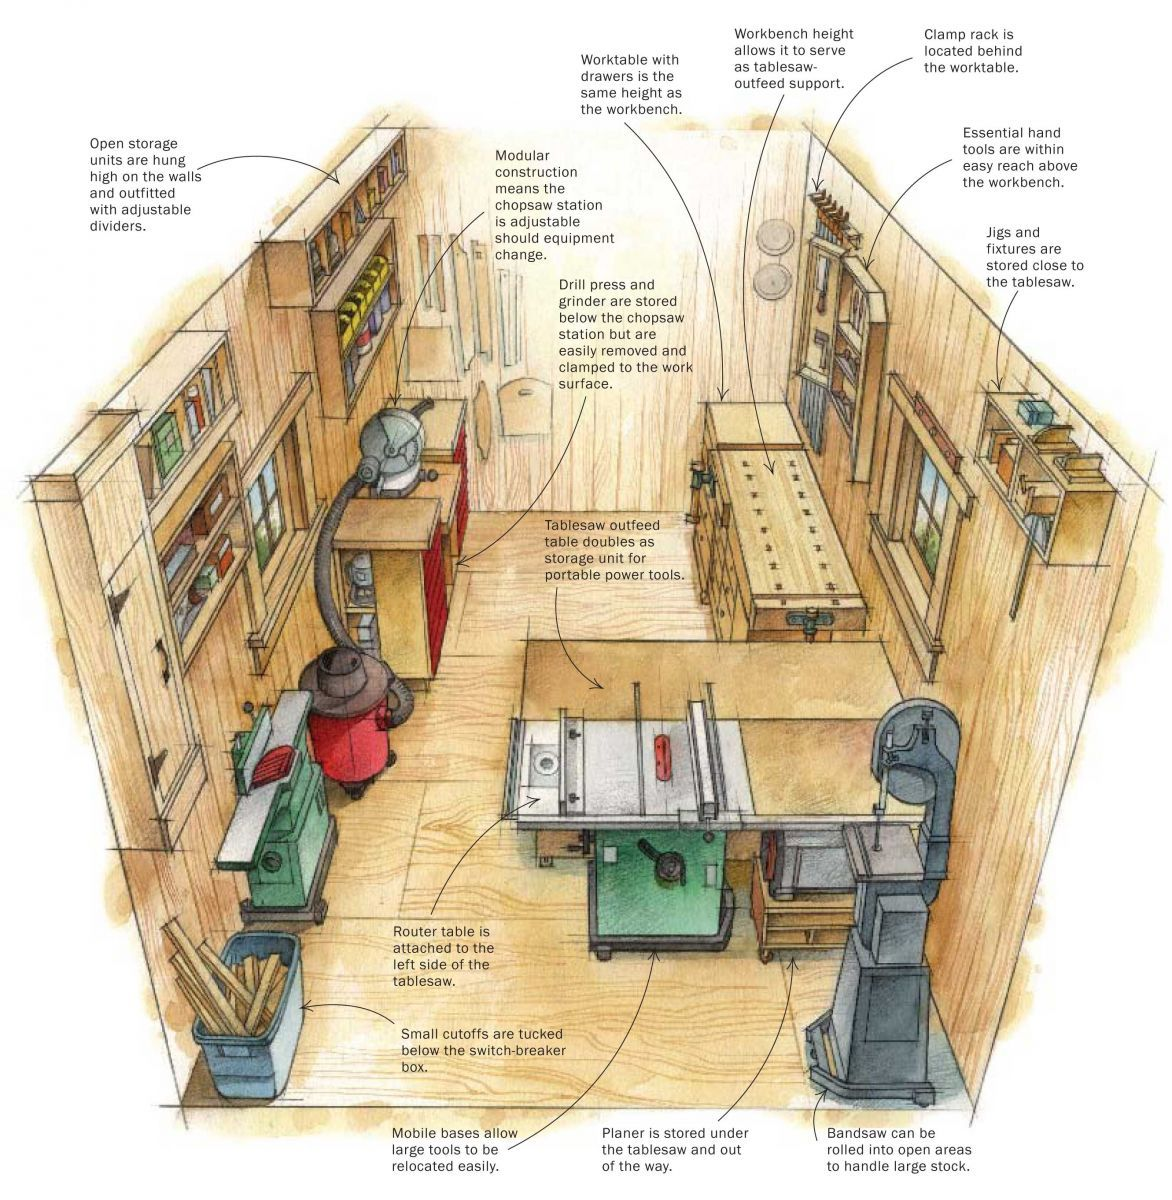 If You Are Like Me You Are Always Looking For Ways To Make Your Shoe More Efficient This Ins T Necessaril Woodworking Shop Plans Workshop Layout Shop Layout